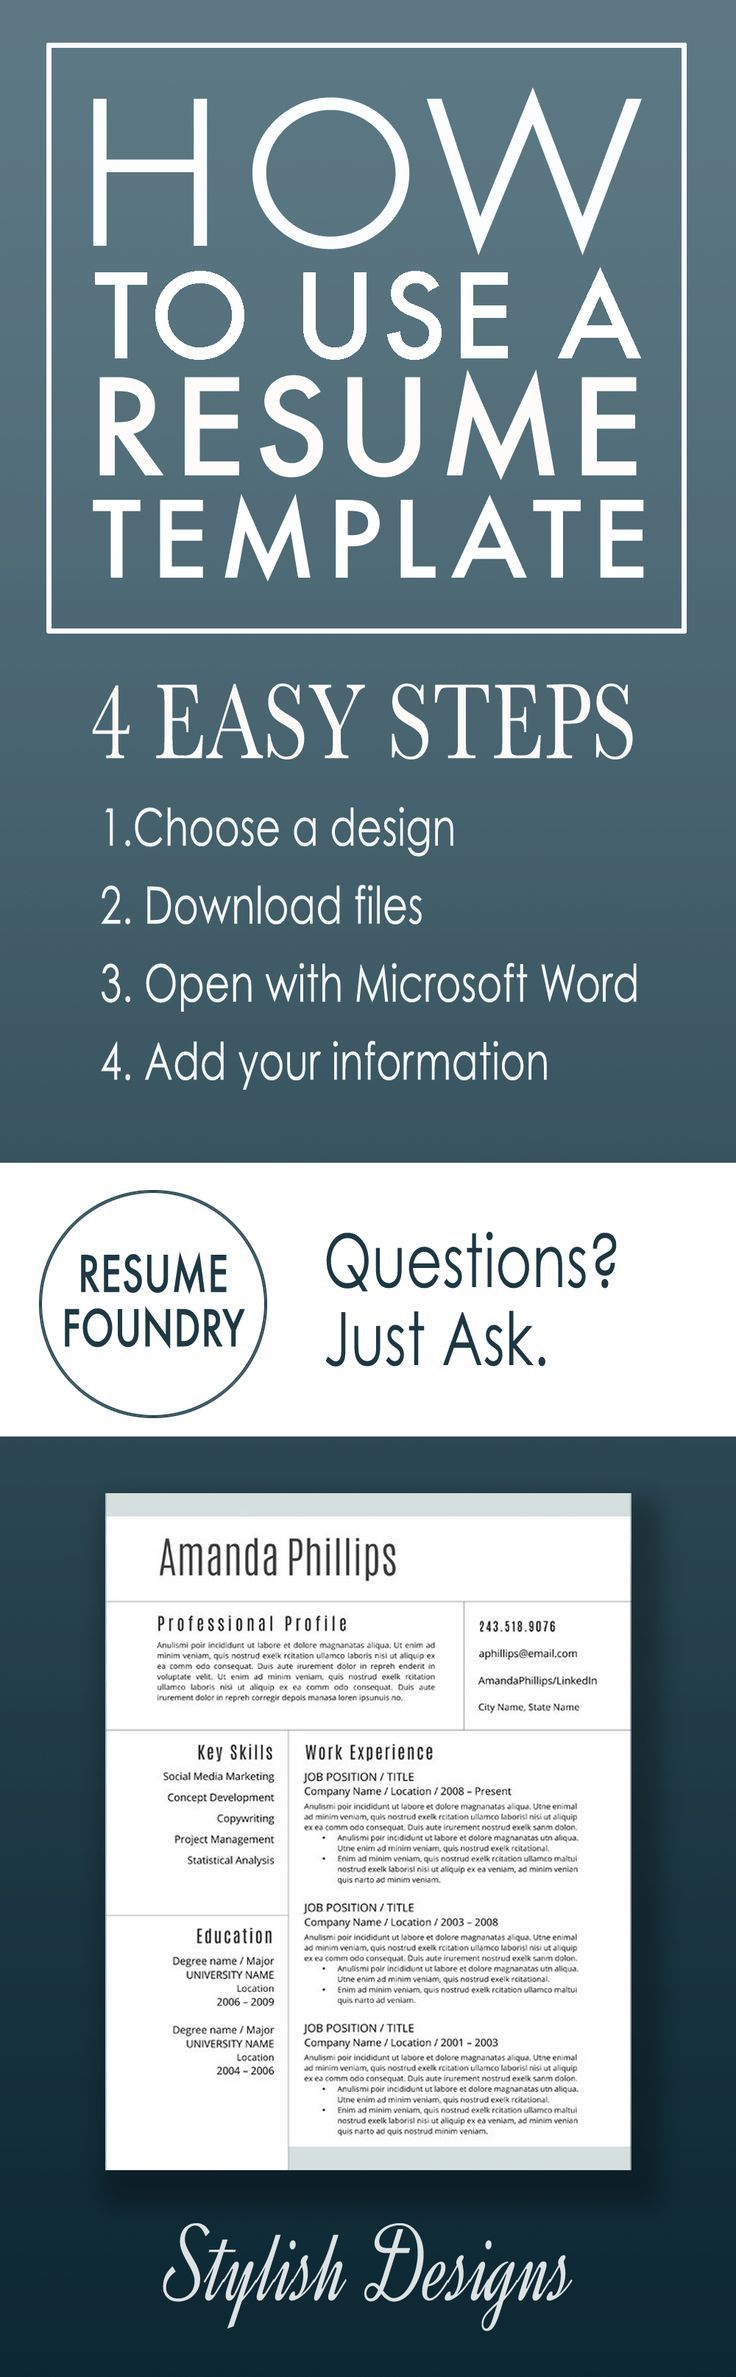 How to fill out a resume template in four easy steps.